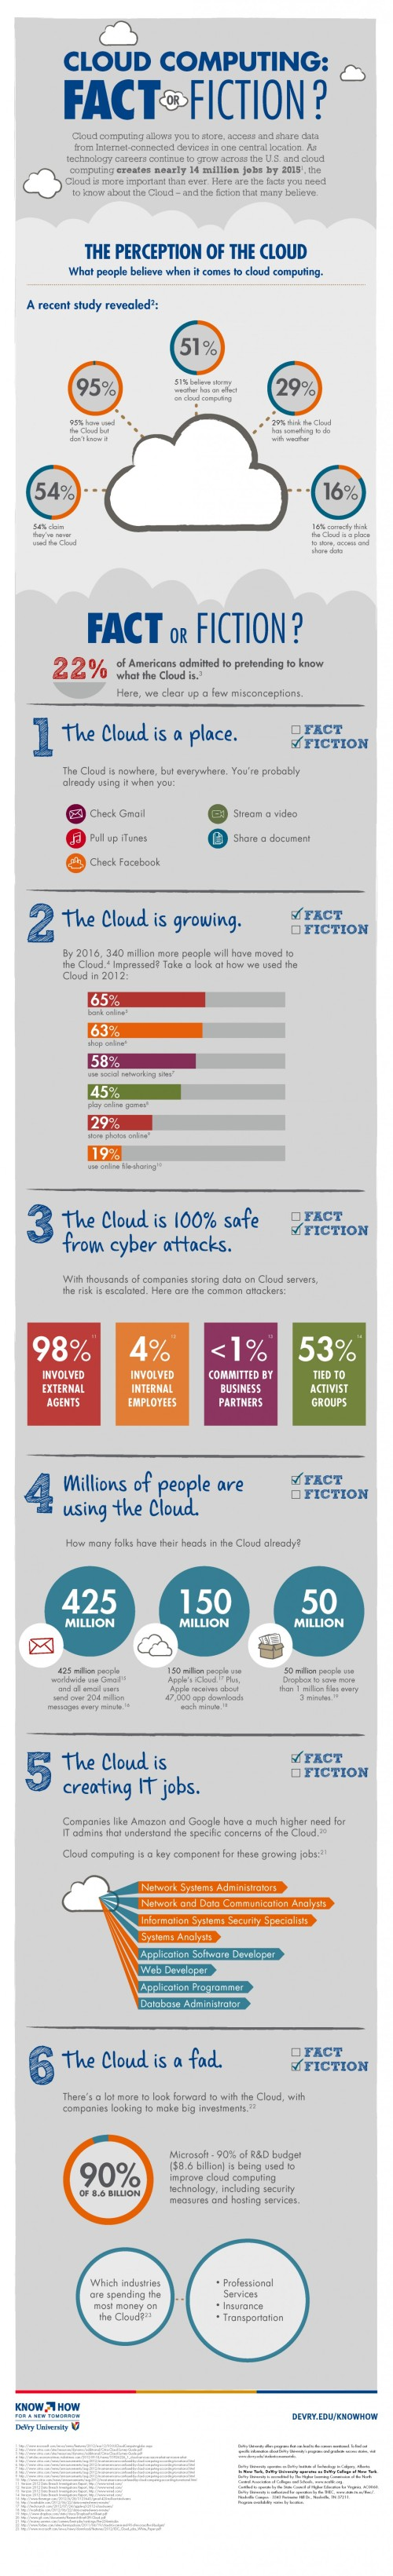 cloud-computing--fact-or-fiction_50e70989a7e6c_w1138